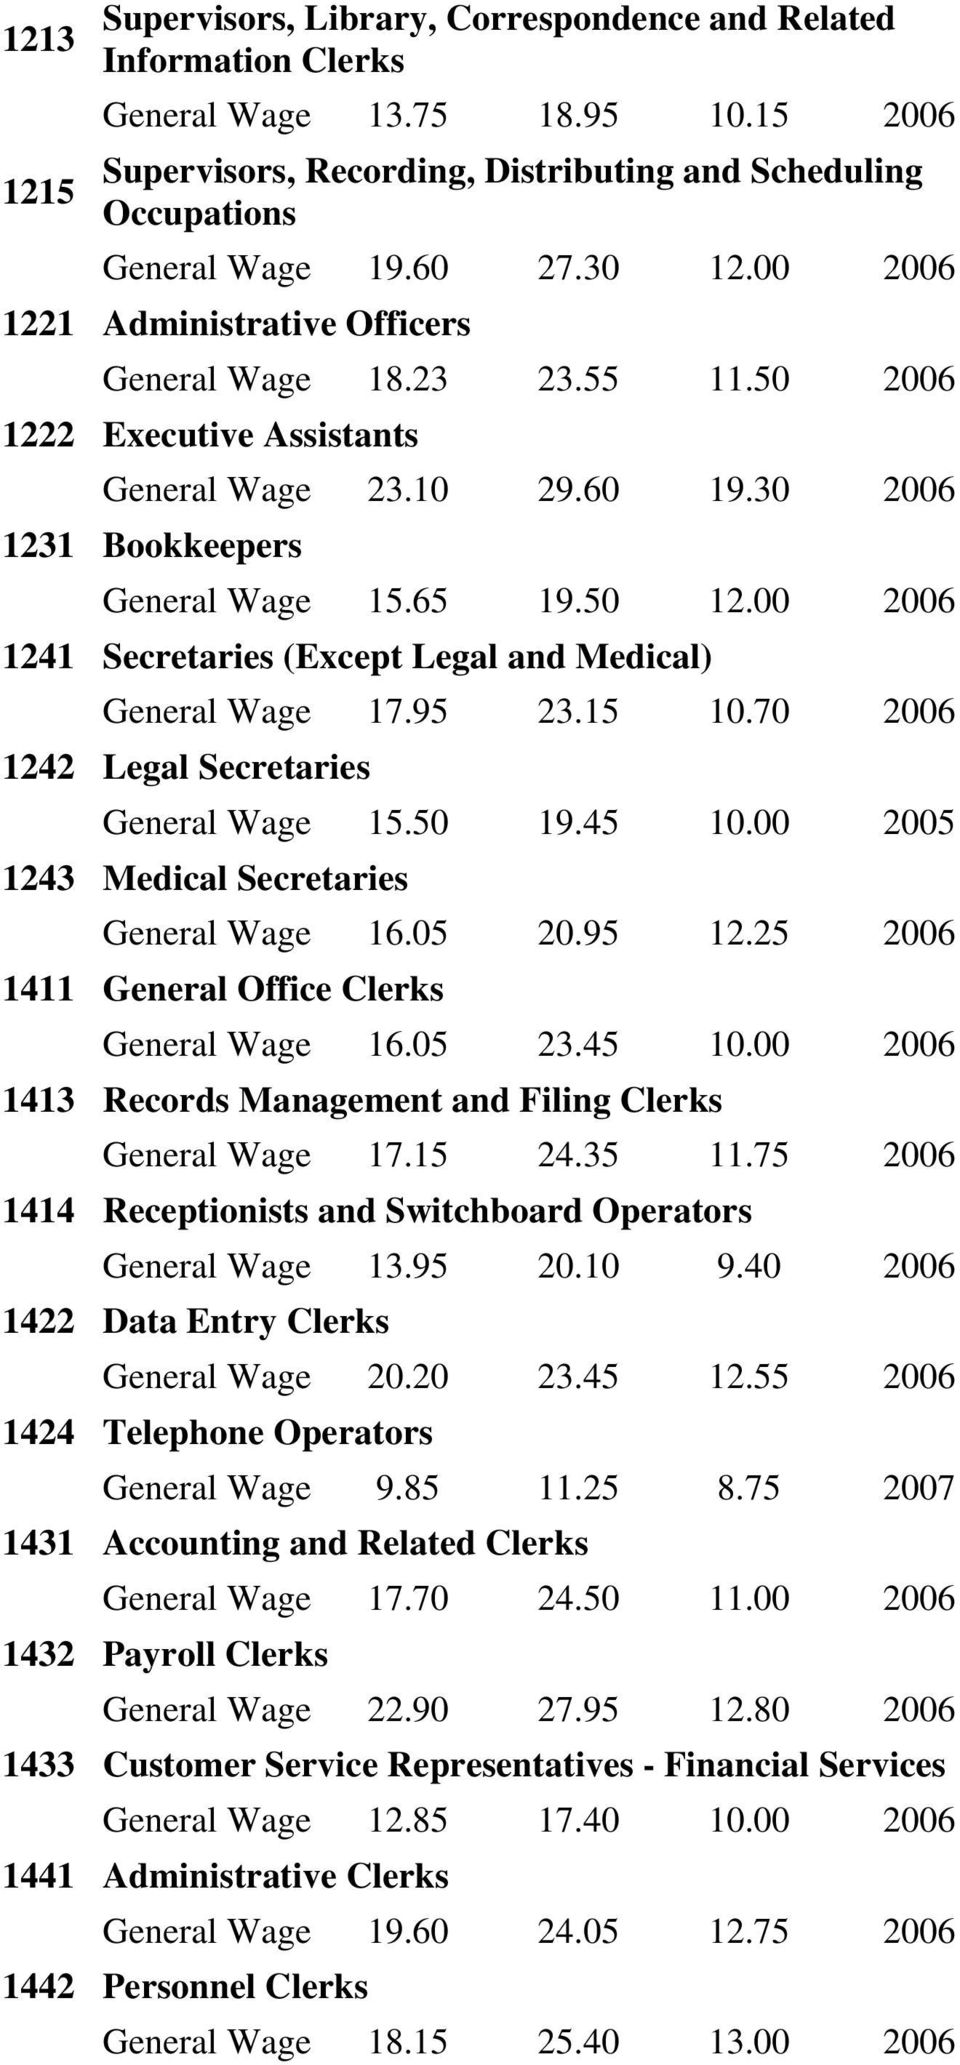 00 2006 1241 Secretaries (Except Legal and Medical) General Wage 17.95 23.15 10.70 2006 1242 Legal Secretaries General Wage 15.50 19.45 10.00 2005 1243 Medical Secretaries General Wage 16.05 20.95 12.